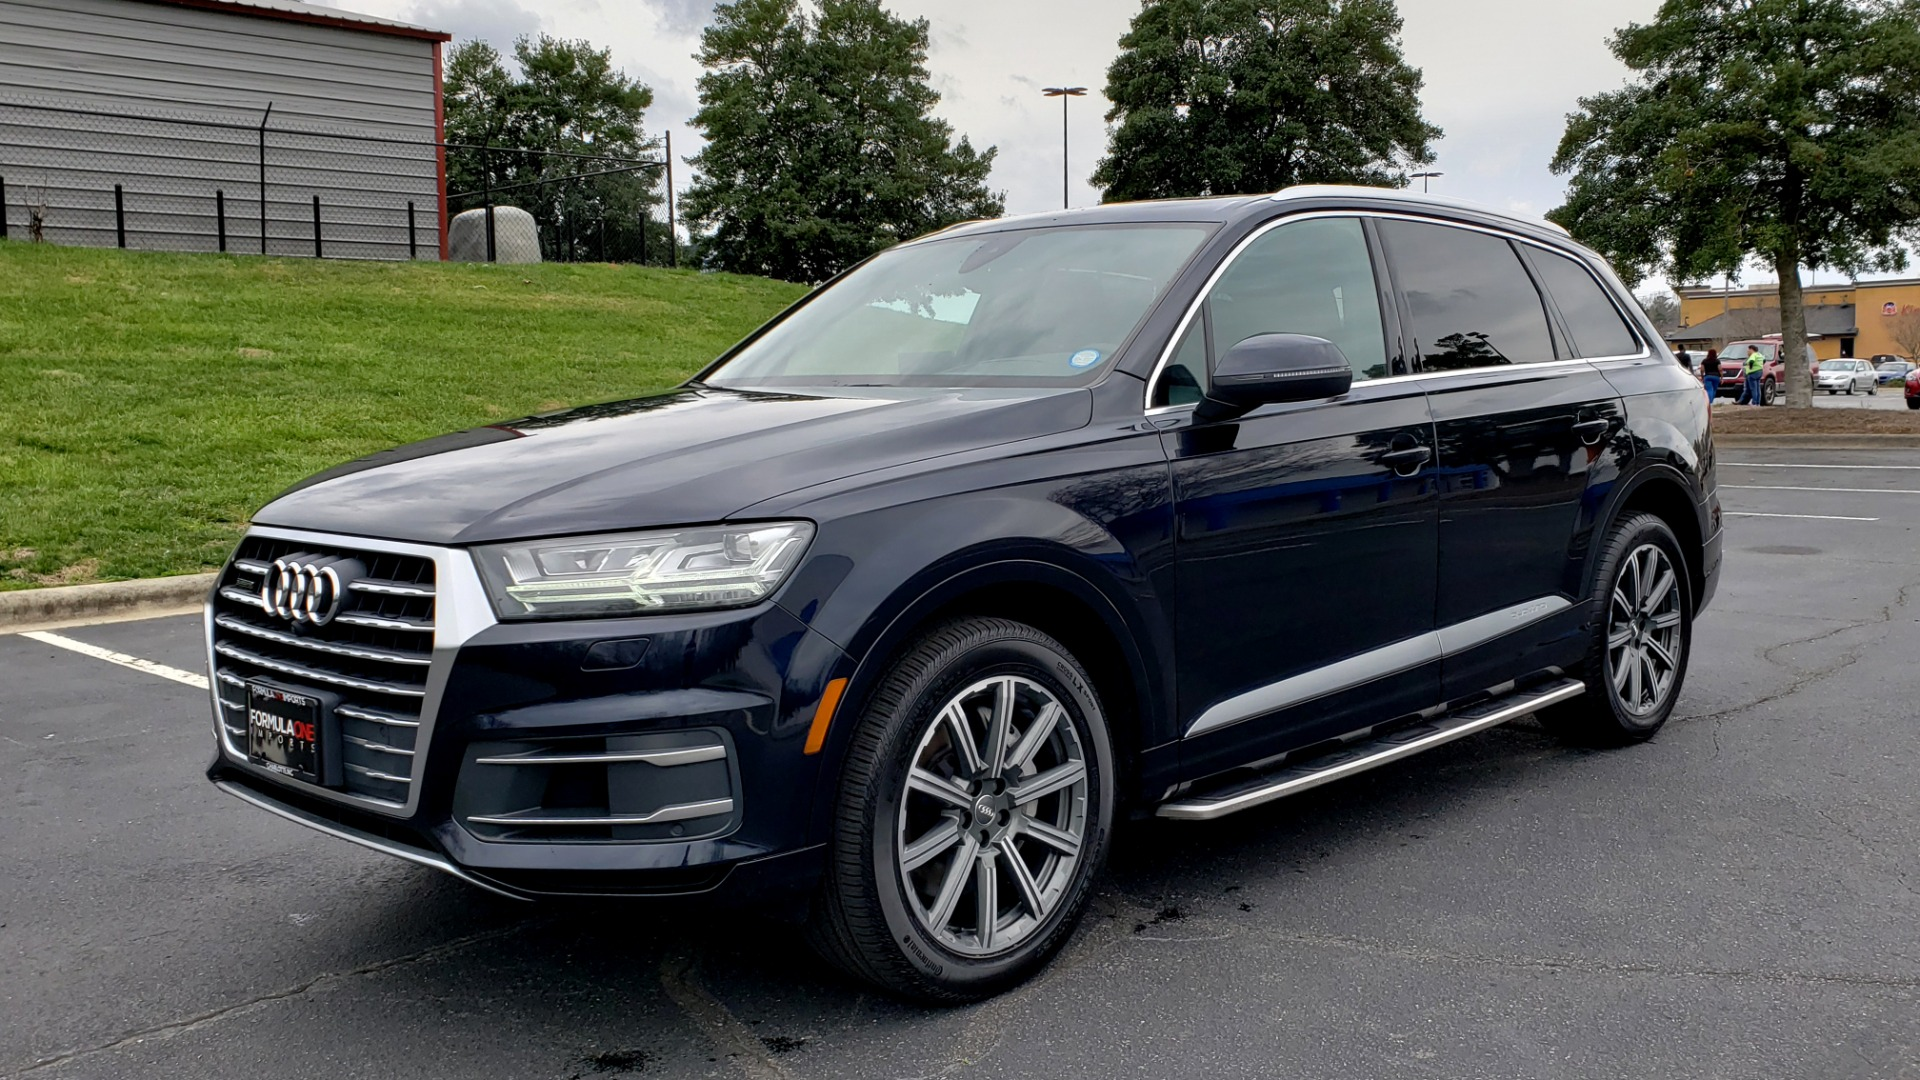 Used 2017 Audi Q7 PRESTIGE 3.0T / AWD / NAV / PANO-ROOF / HTD STS / BOSE / VISION for sale Sold at Formula Imports in Charlotte NC 28227 1